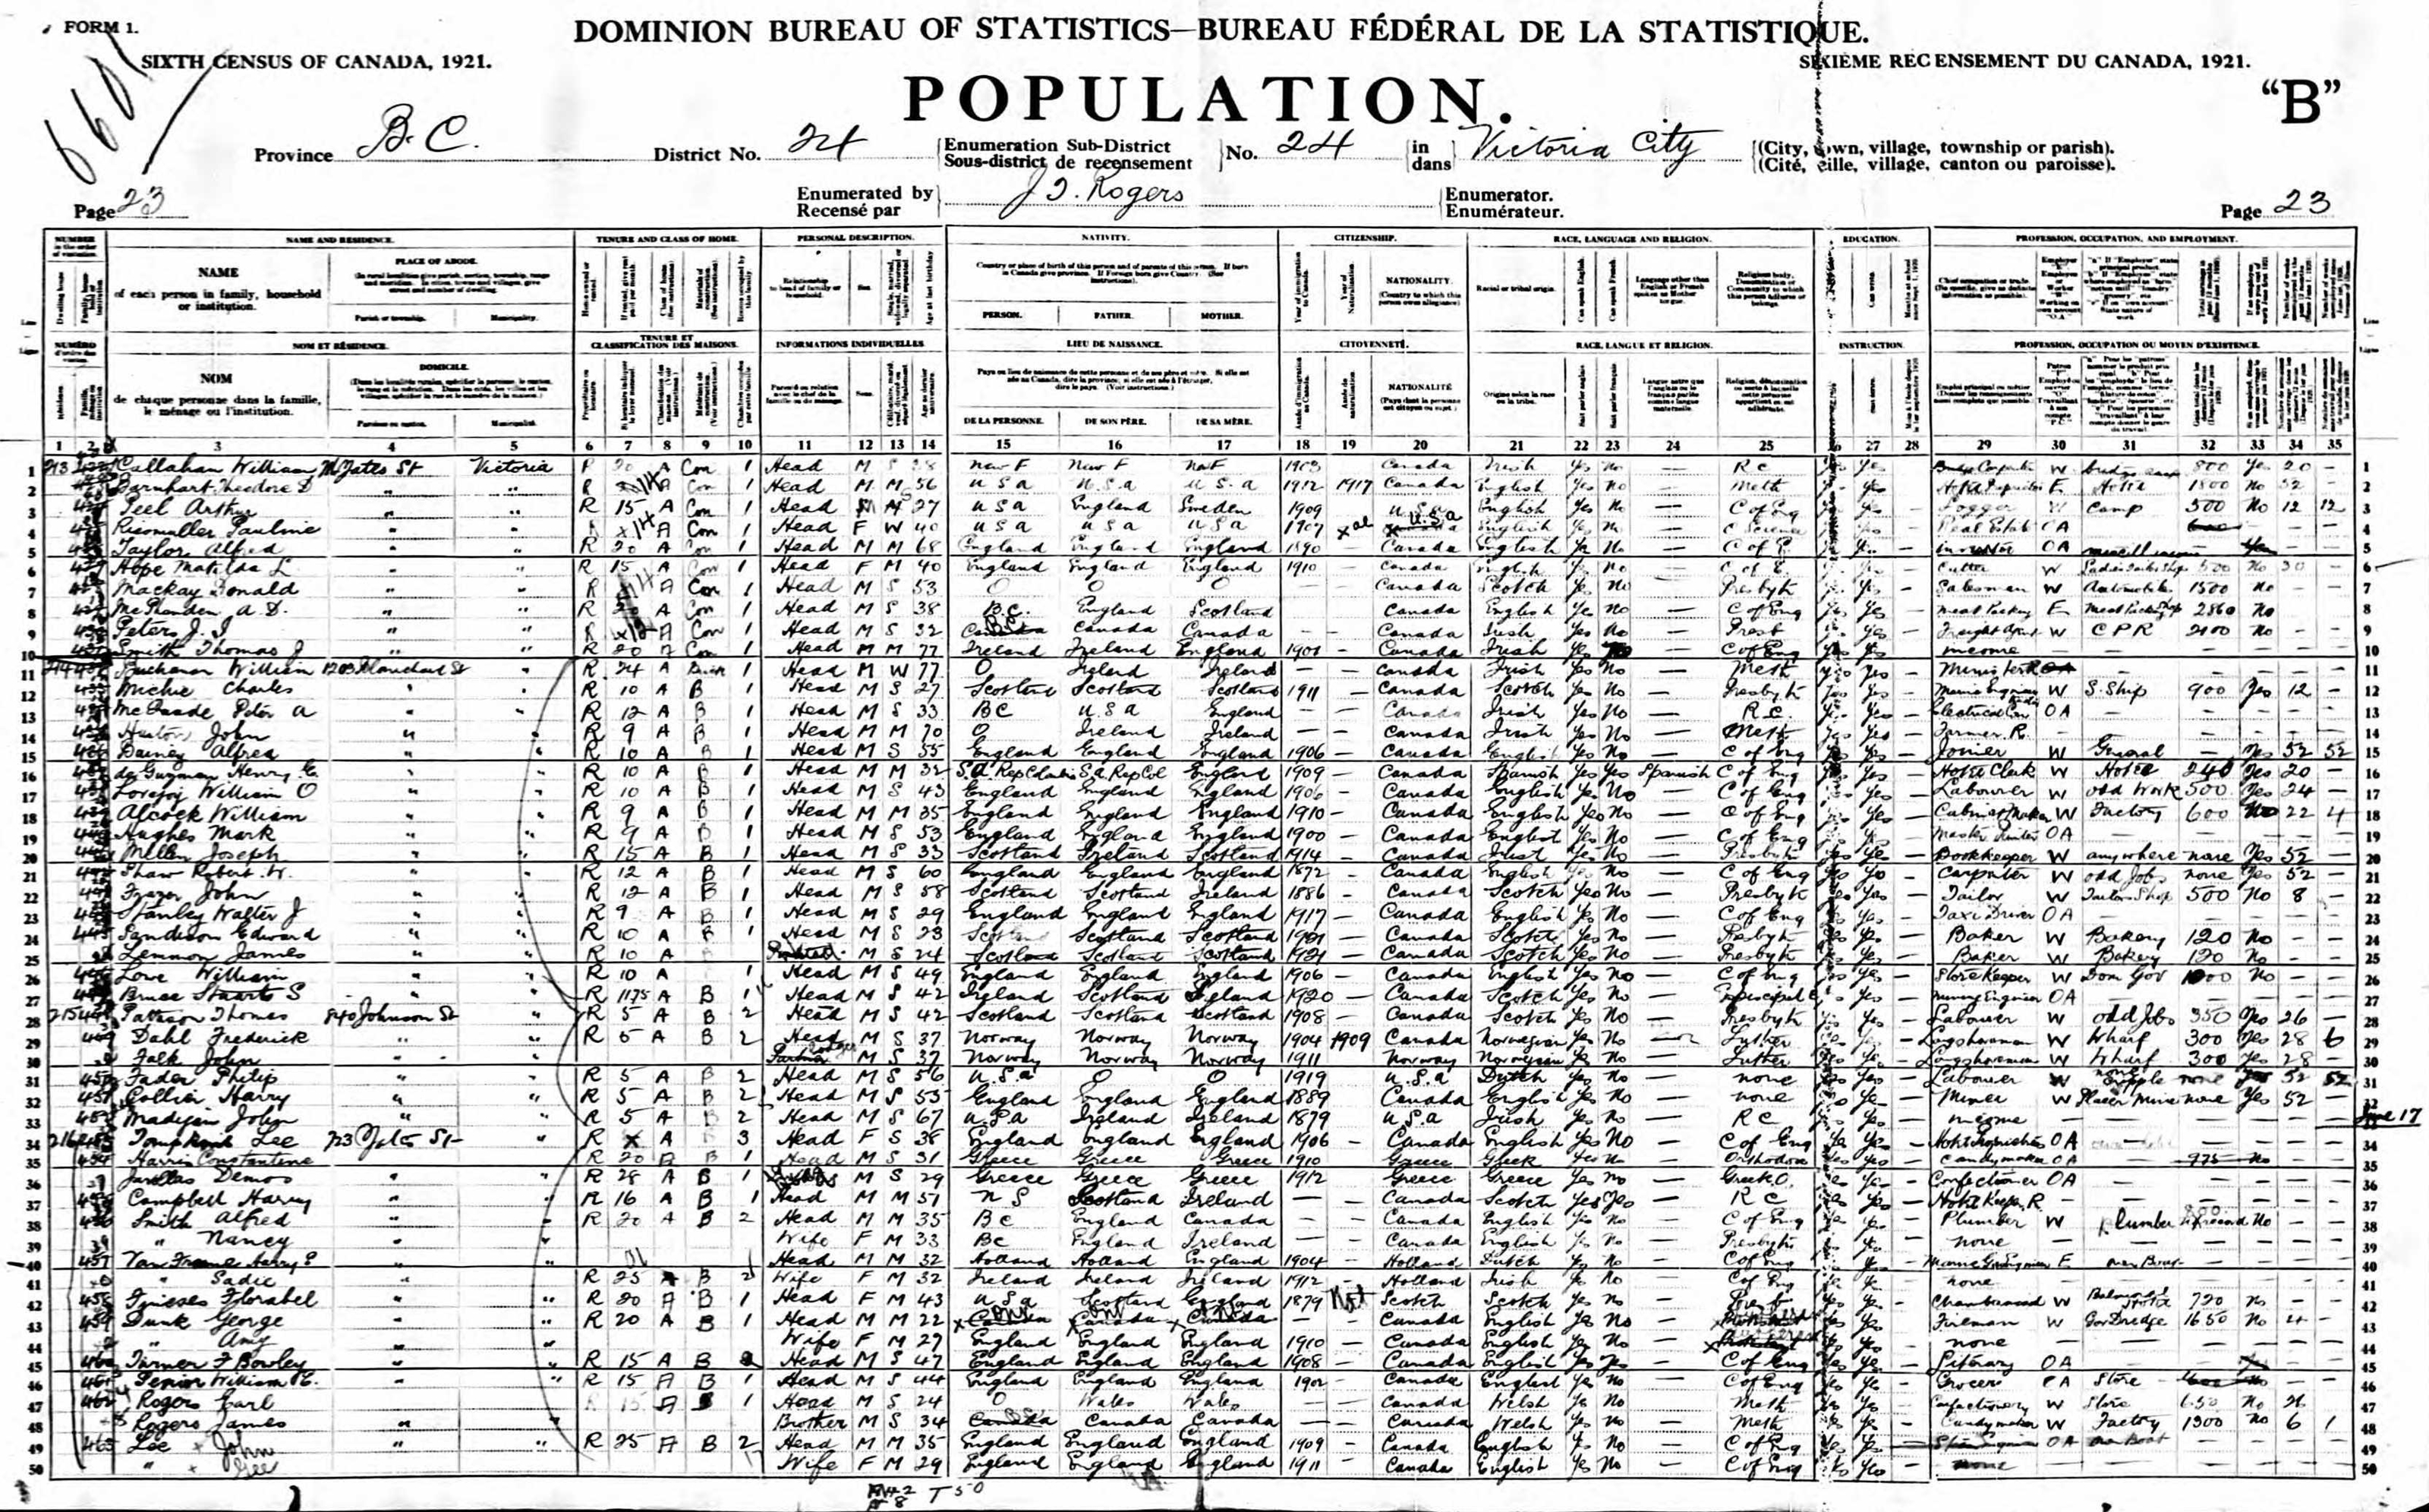 James Peters - 1921 census